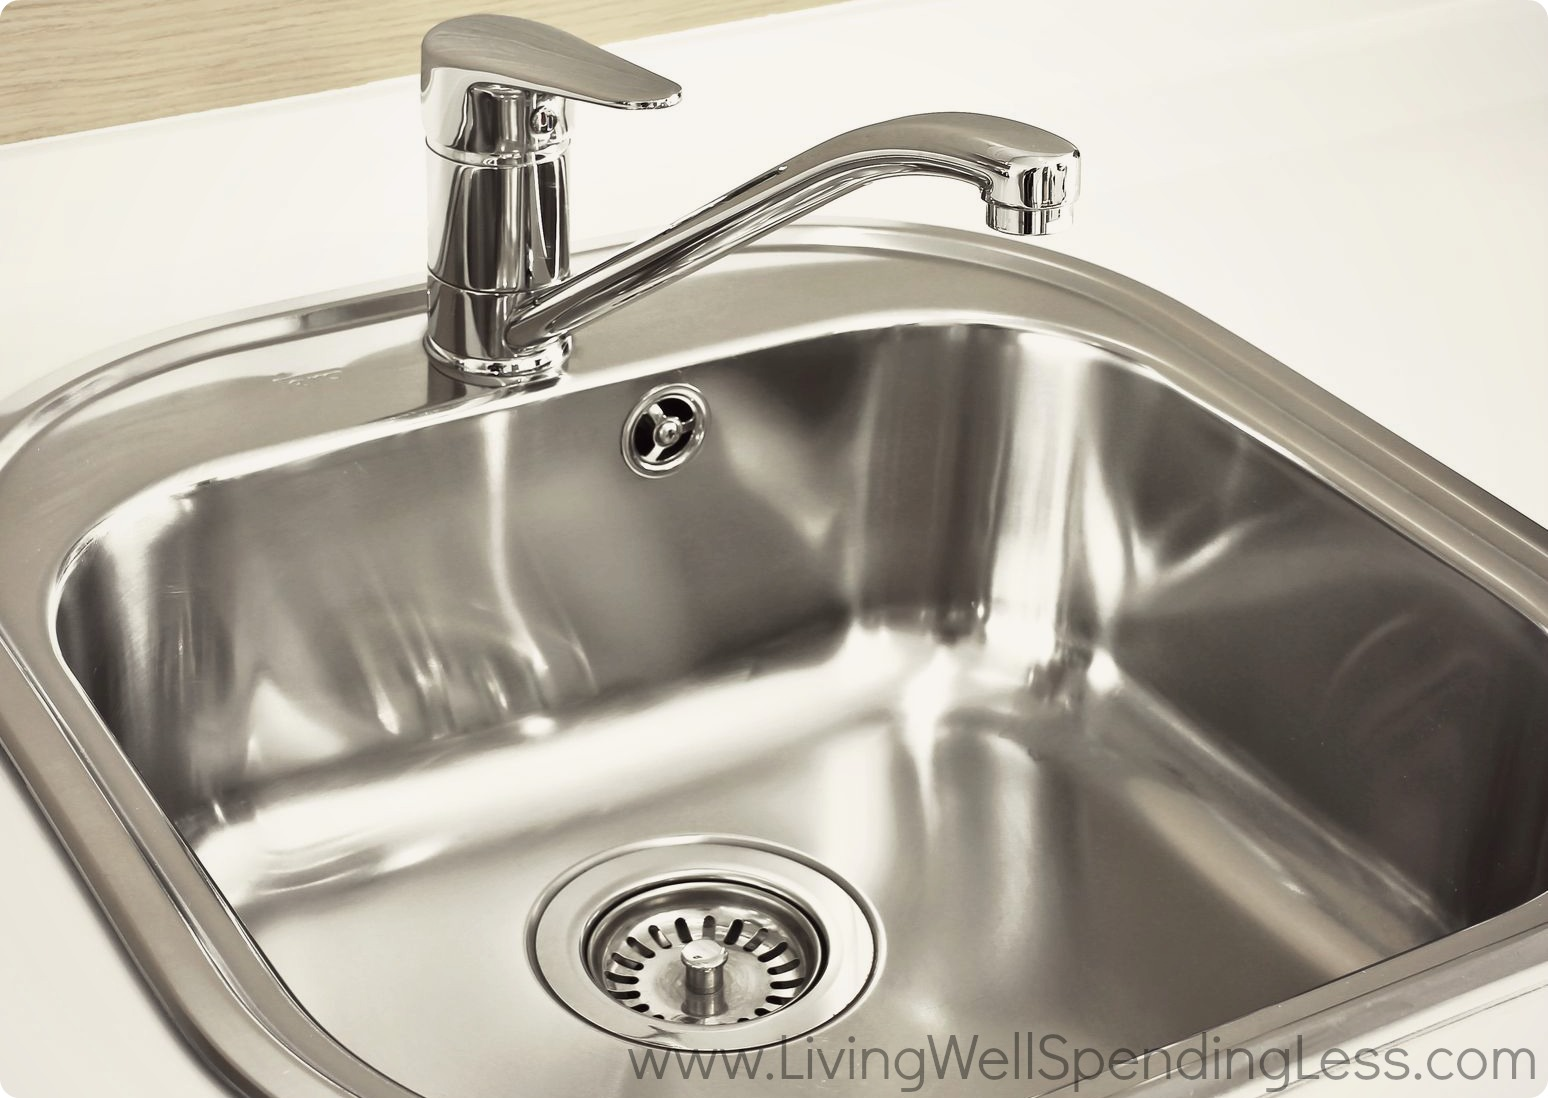 clean kitchen sink - living well spending less®